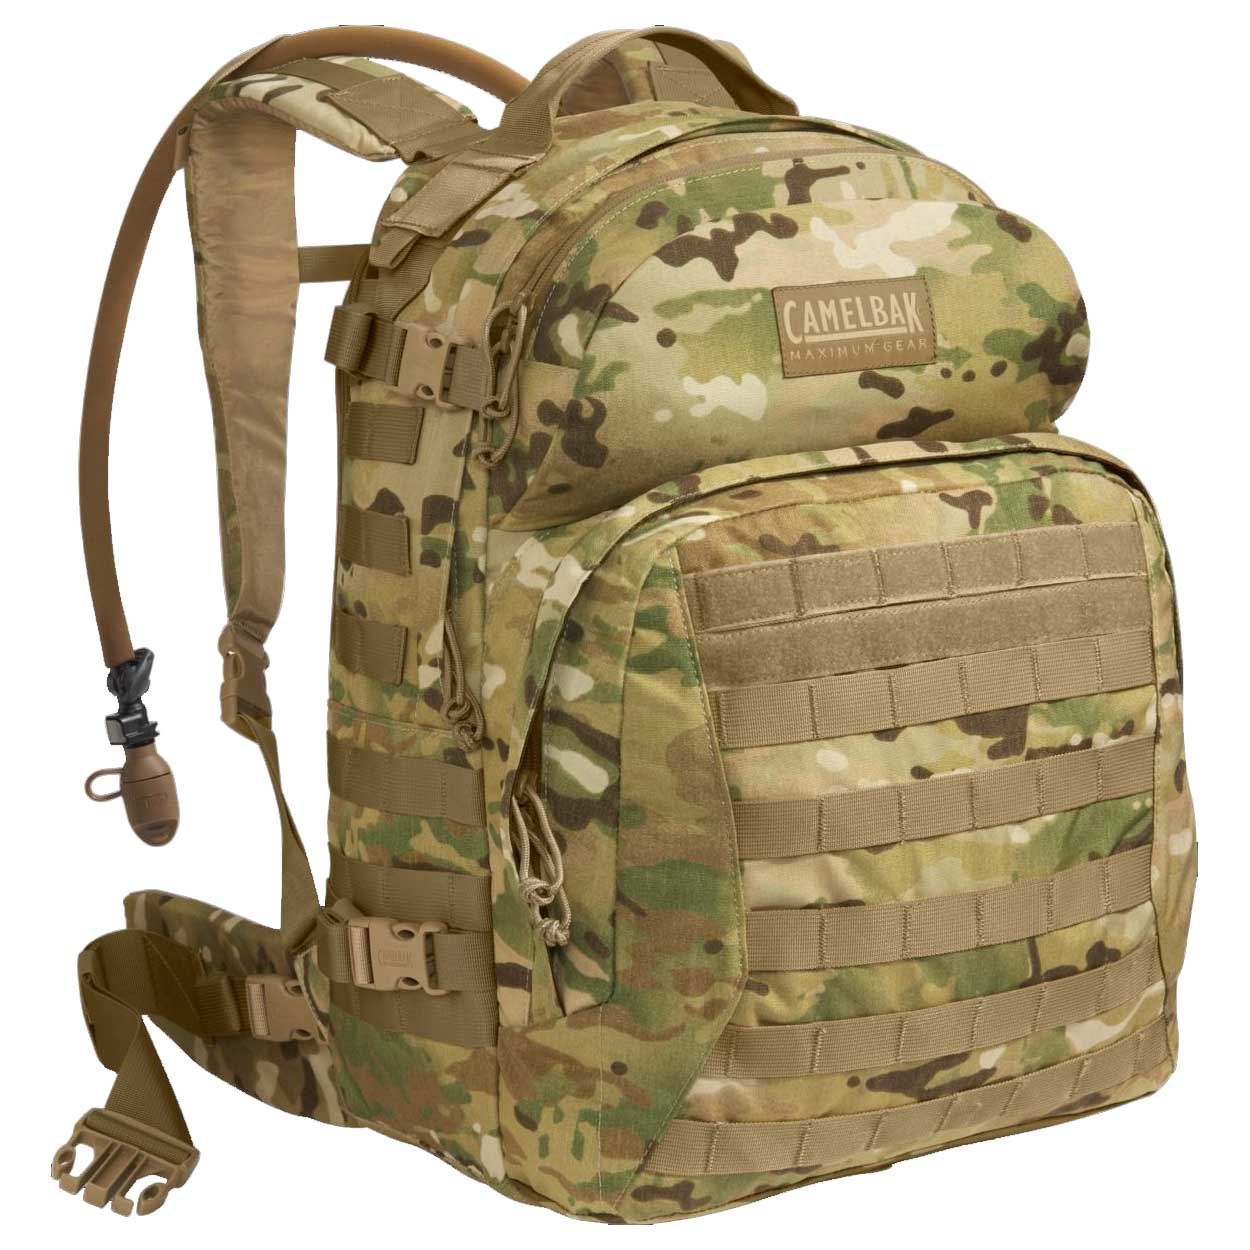 CamelBak Motherlode Hydration Backpack Pack 100 oz 3L MultiCam 60667 by CamelBak